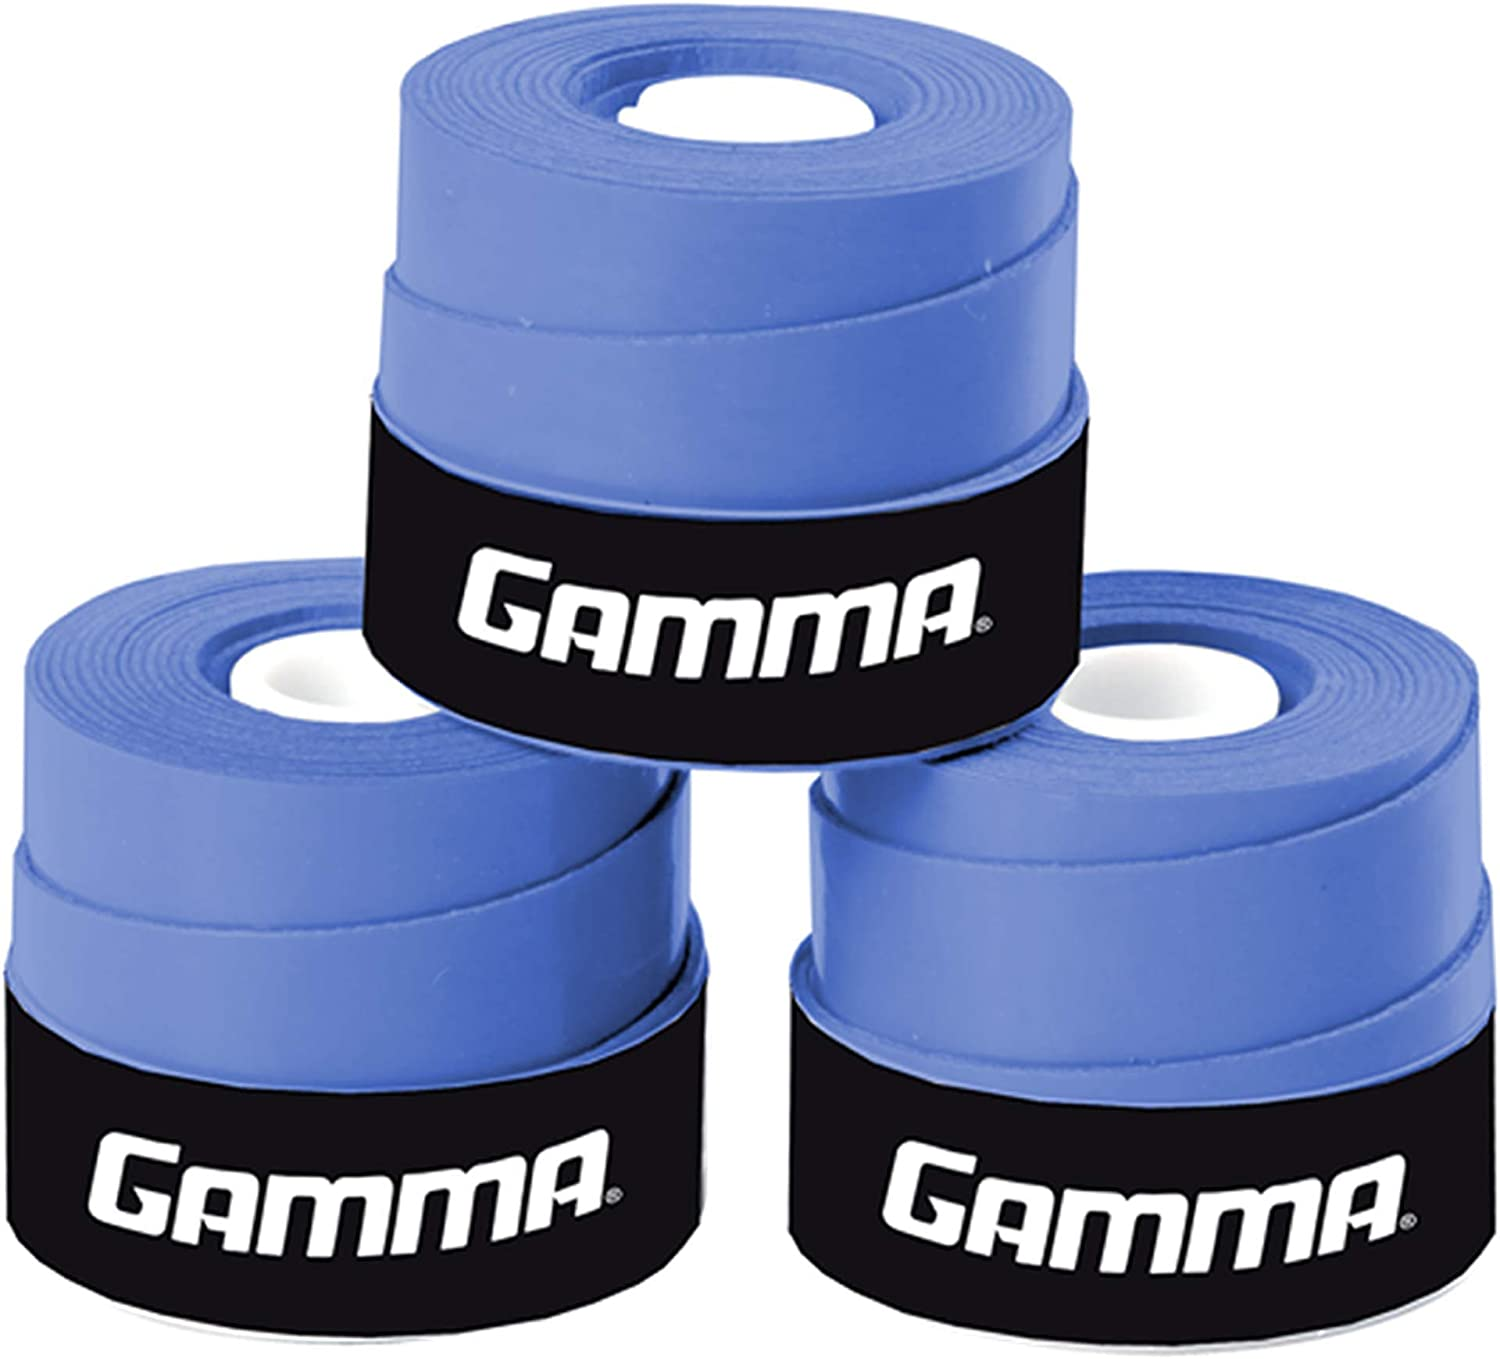 Gamma Supreme Overgrip, Blue : Tennis Racket Grips : Sports & Outdoors